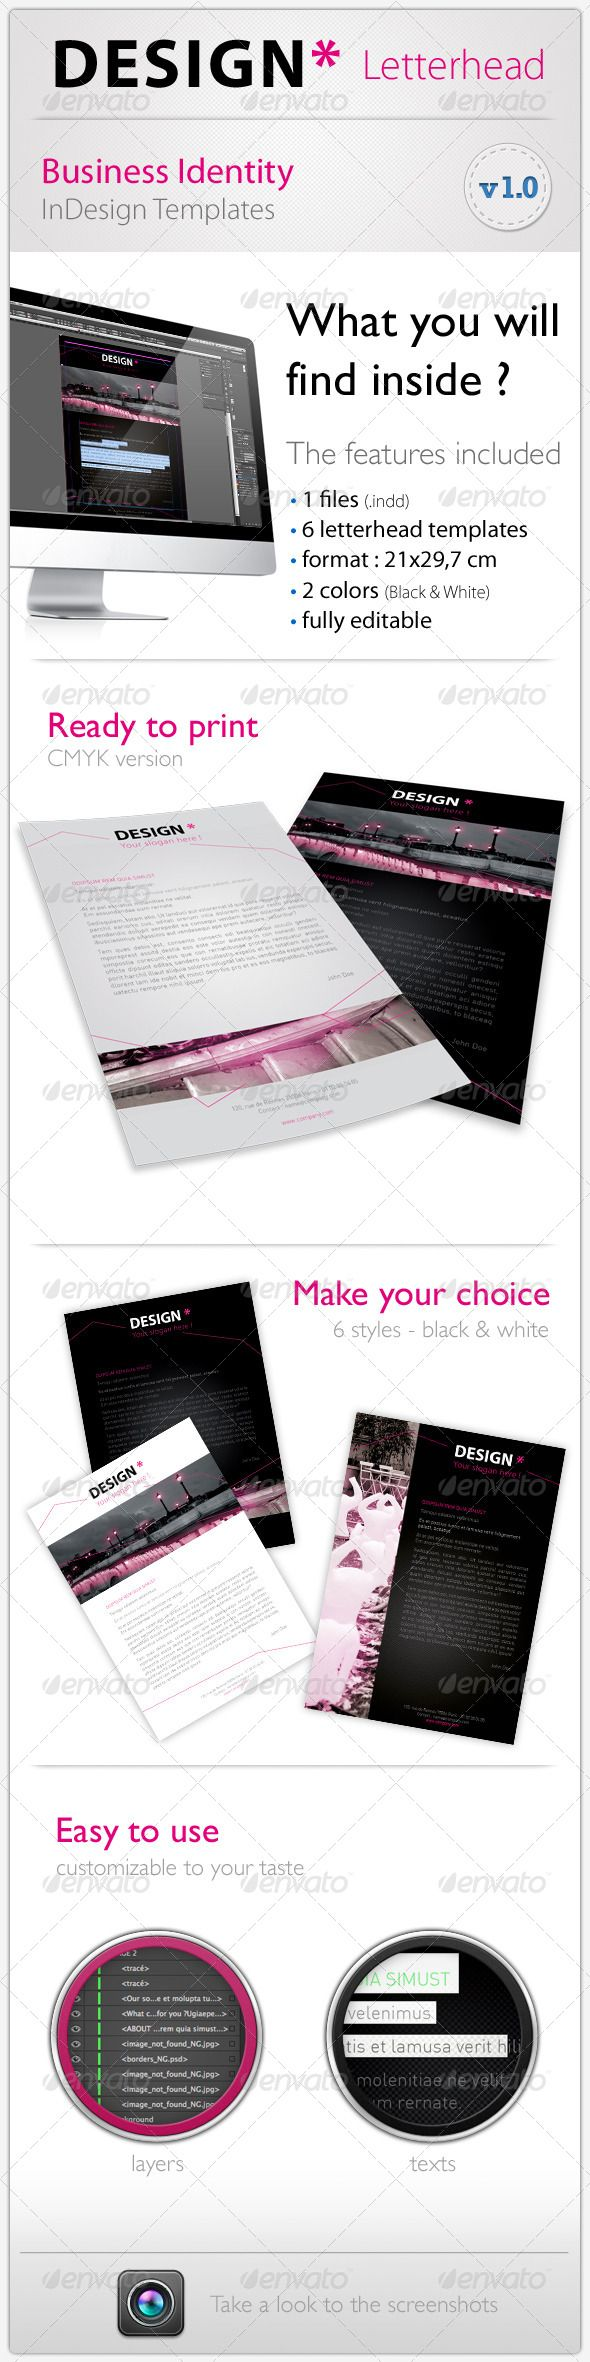 indesign how to change size of image